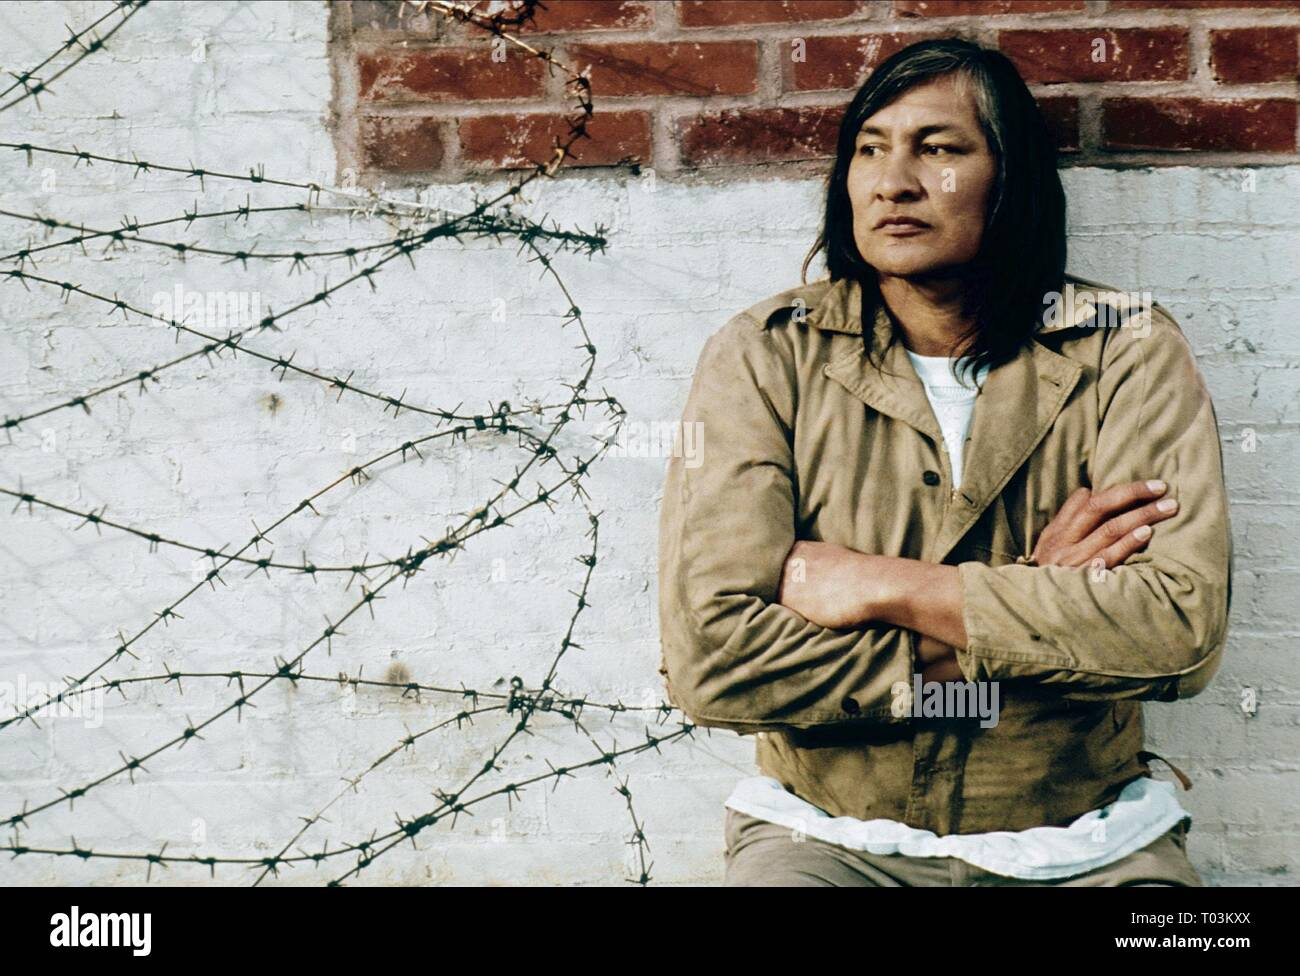 WILL SAMPSON, ONE FLEW OVER THE CUCKOO'S NEST, 1975 - Stock Image